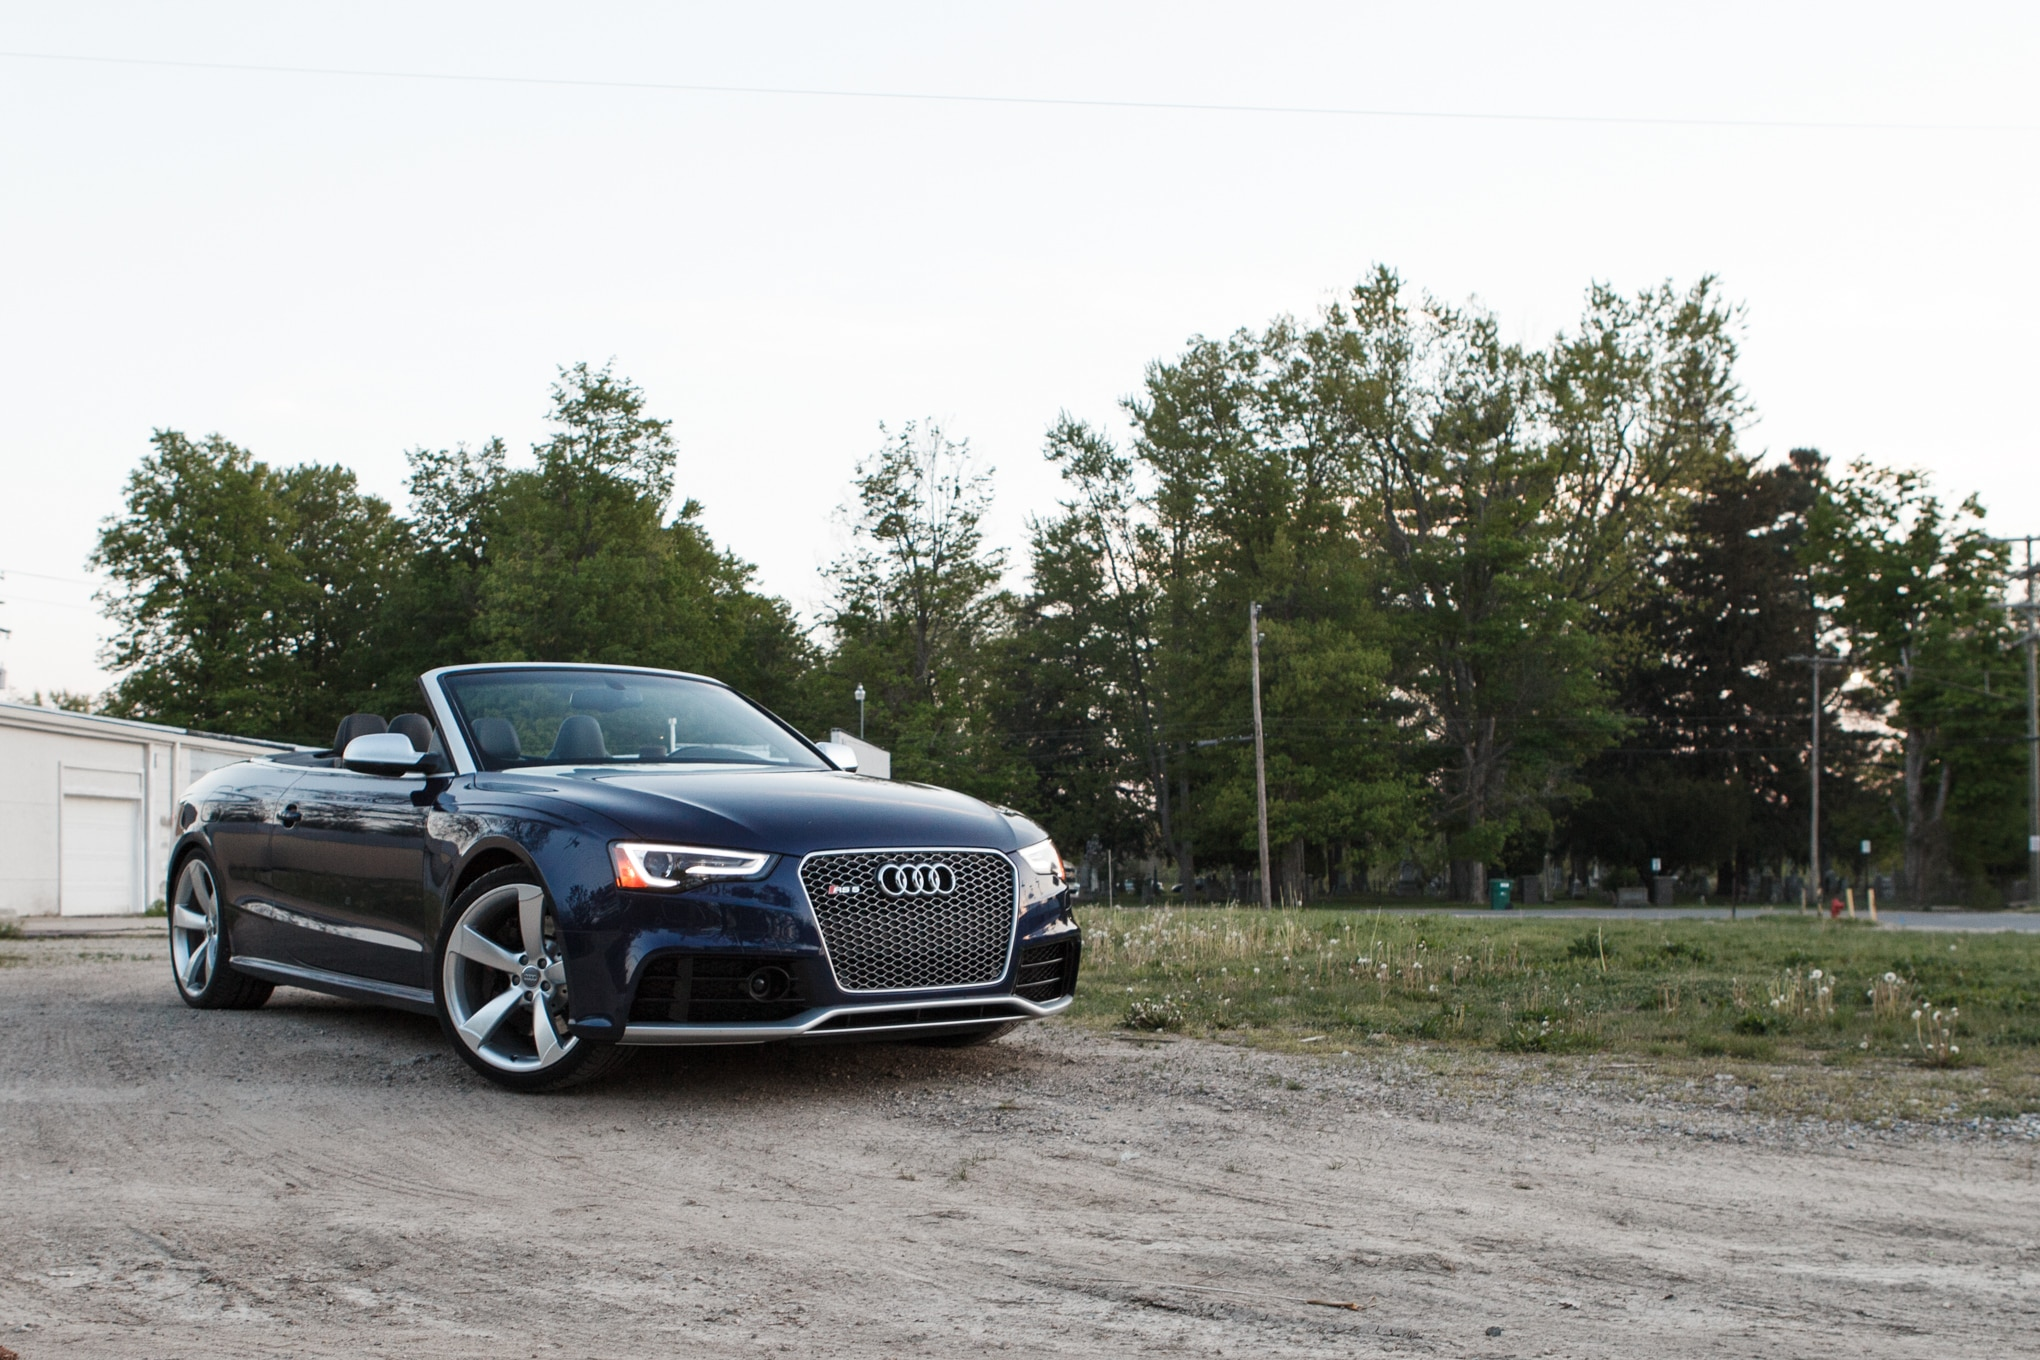 2013 Audi RS5 Cabriolet Front Right View 11